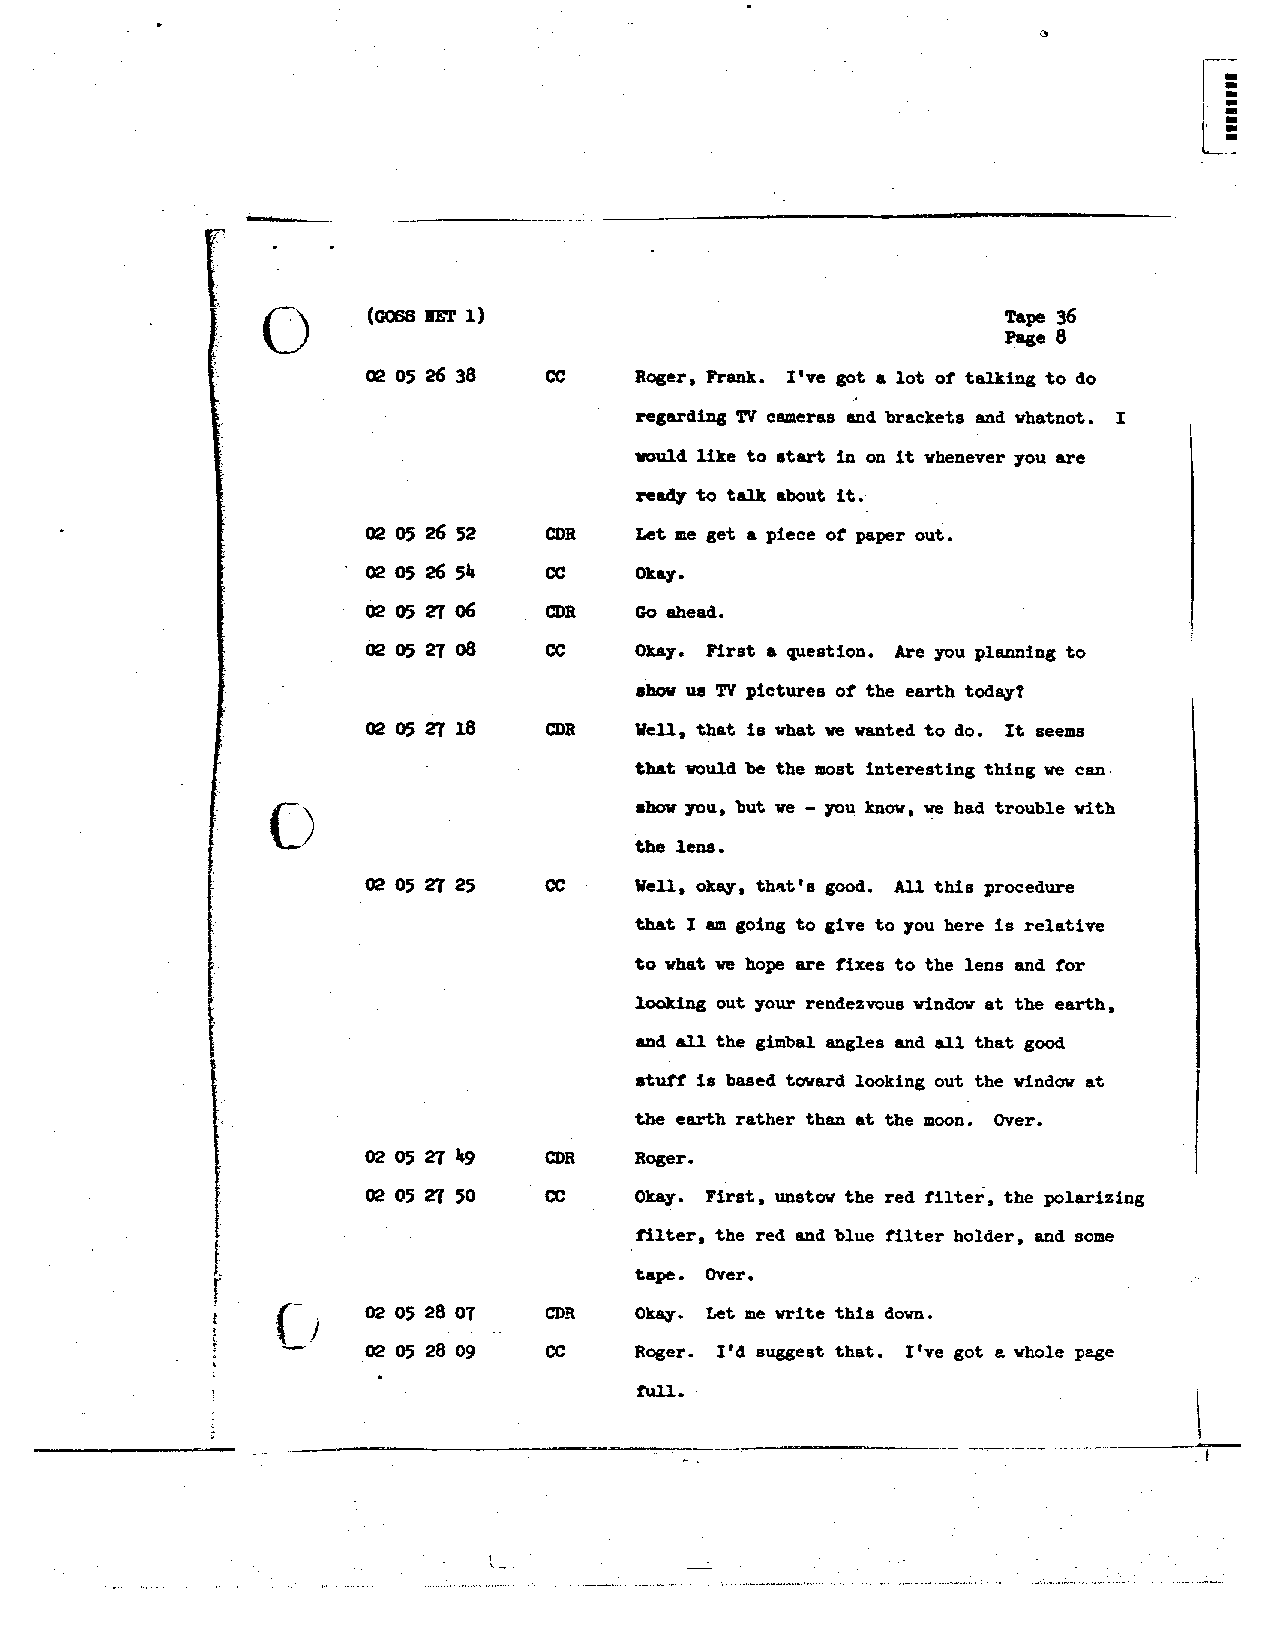 Page 278 of Apollo 8's original transcript